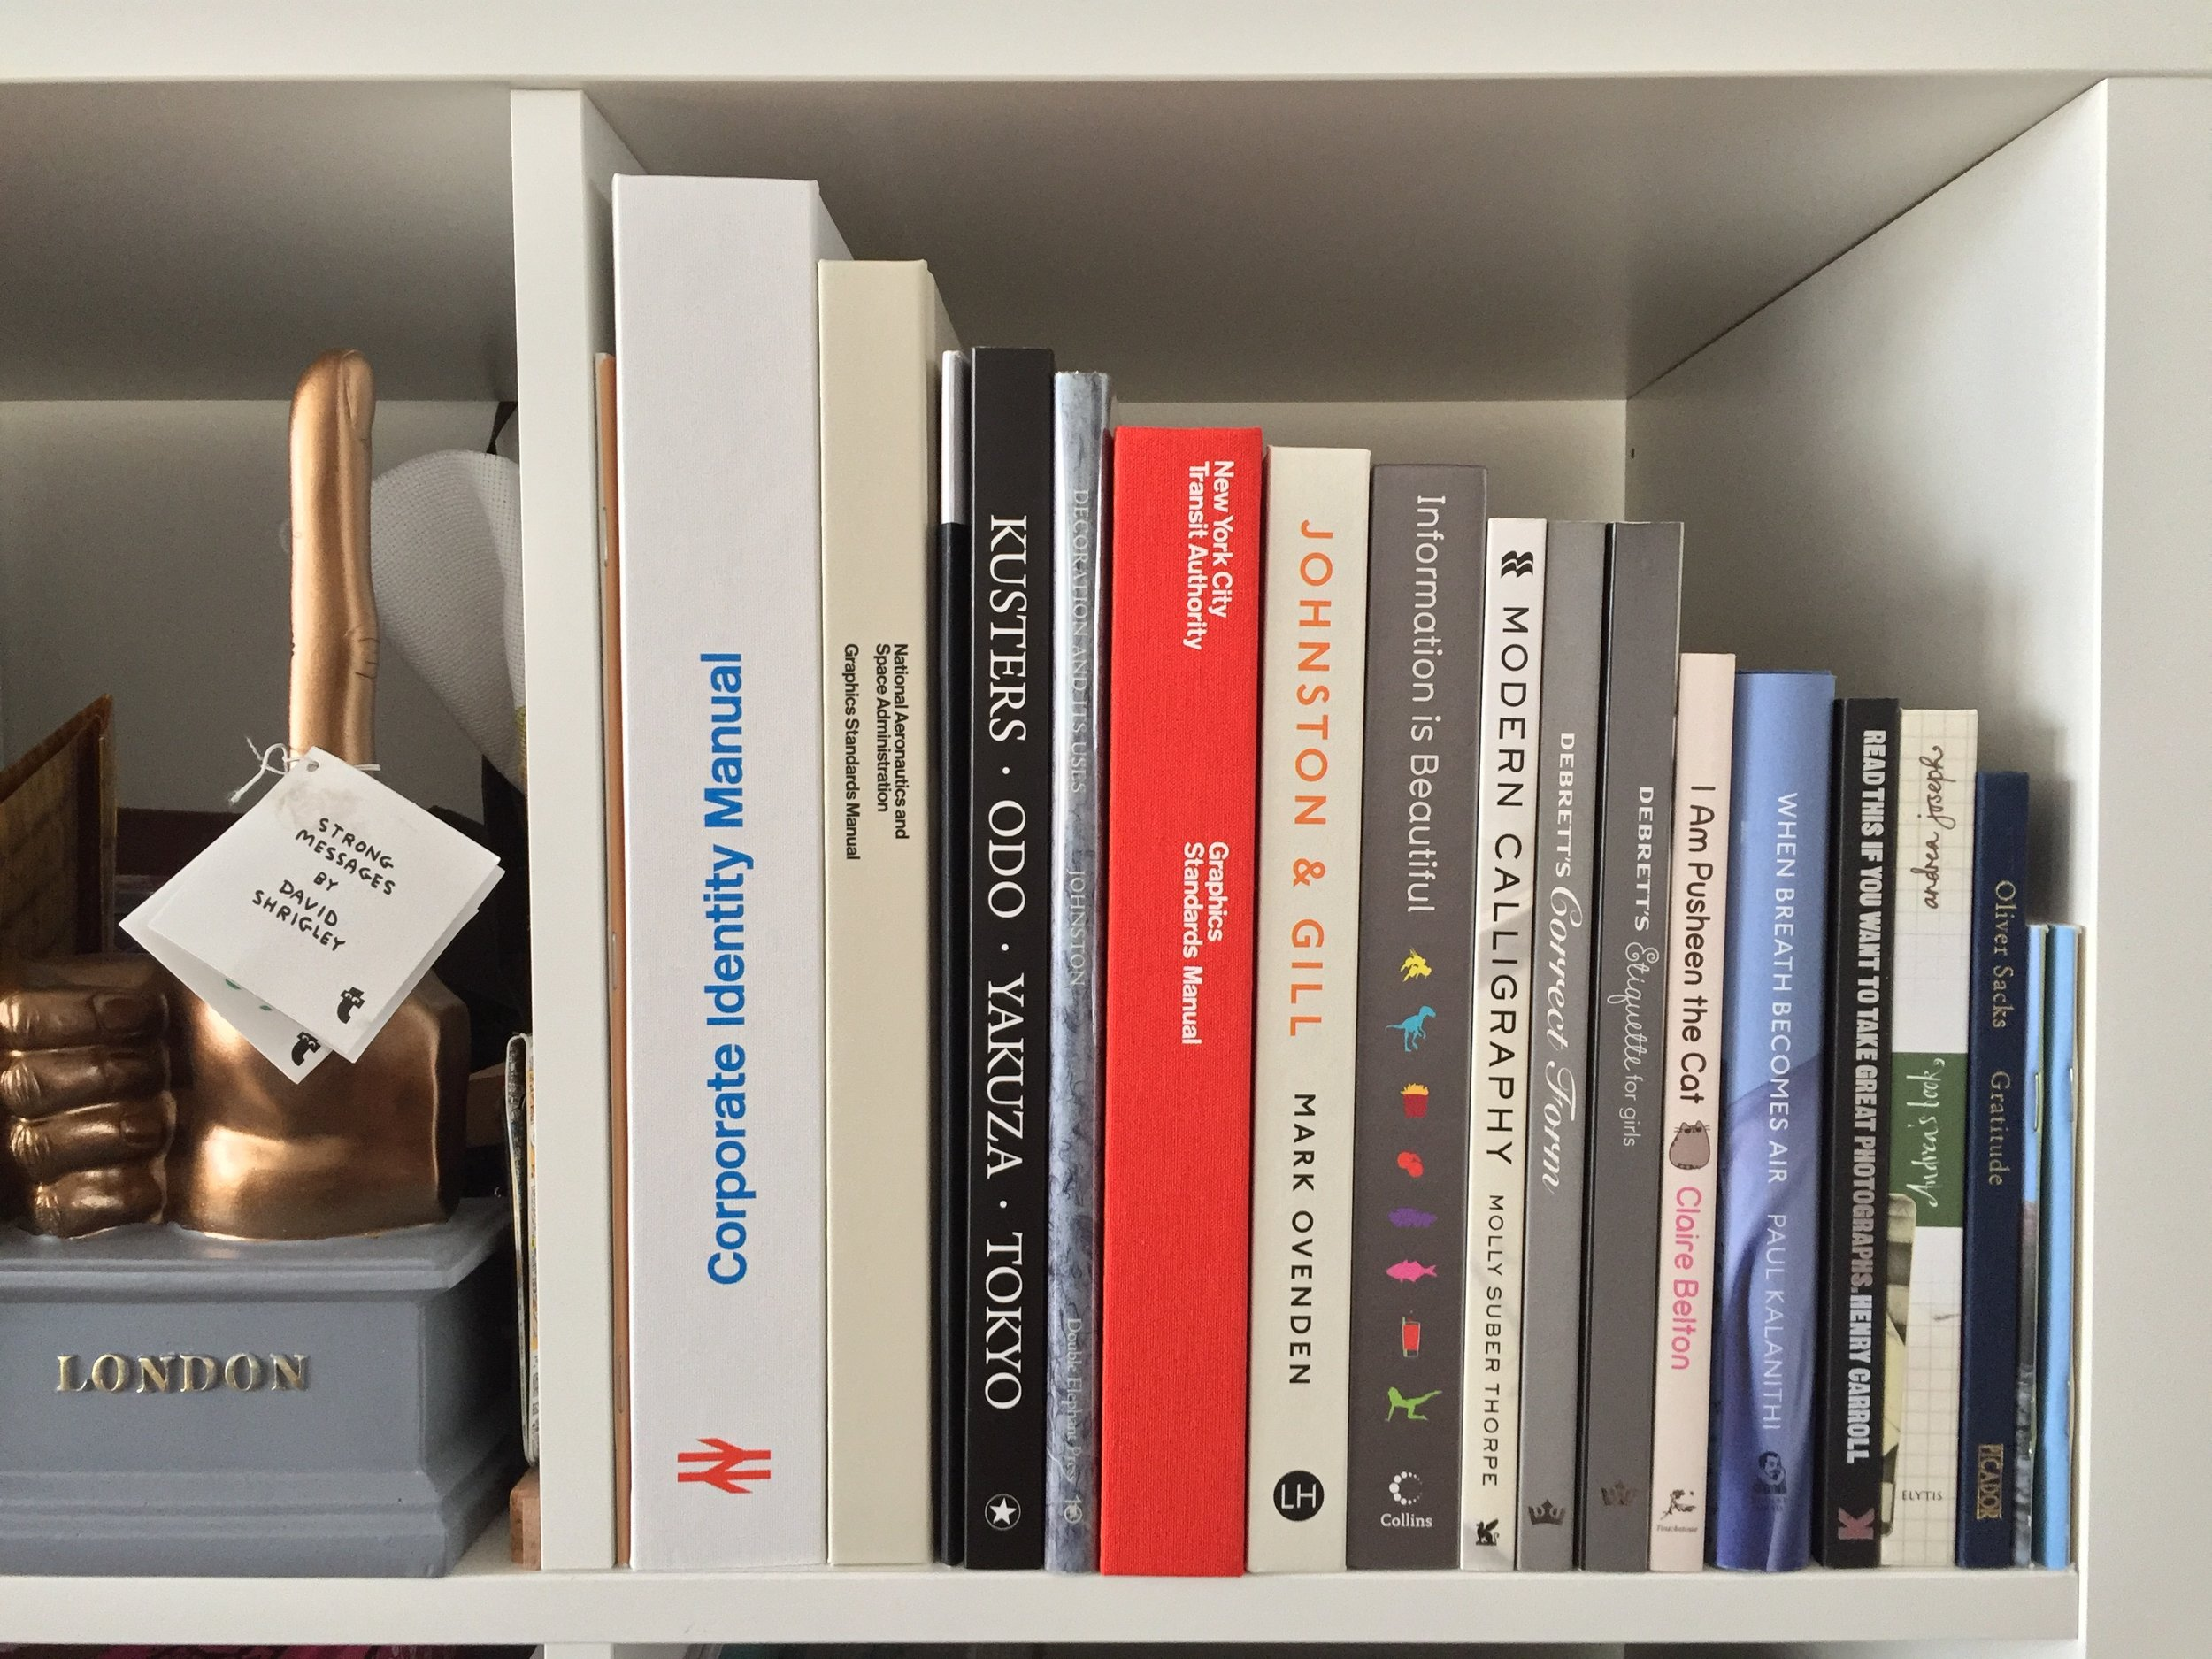 This corner of my bookcase is going to collapse under the weight of all the design manuals...